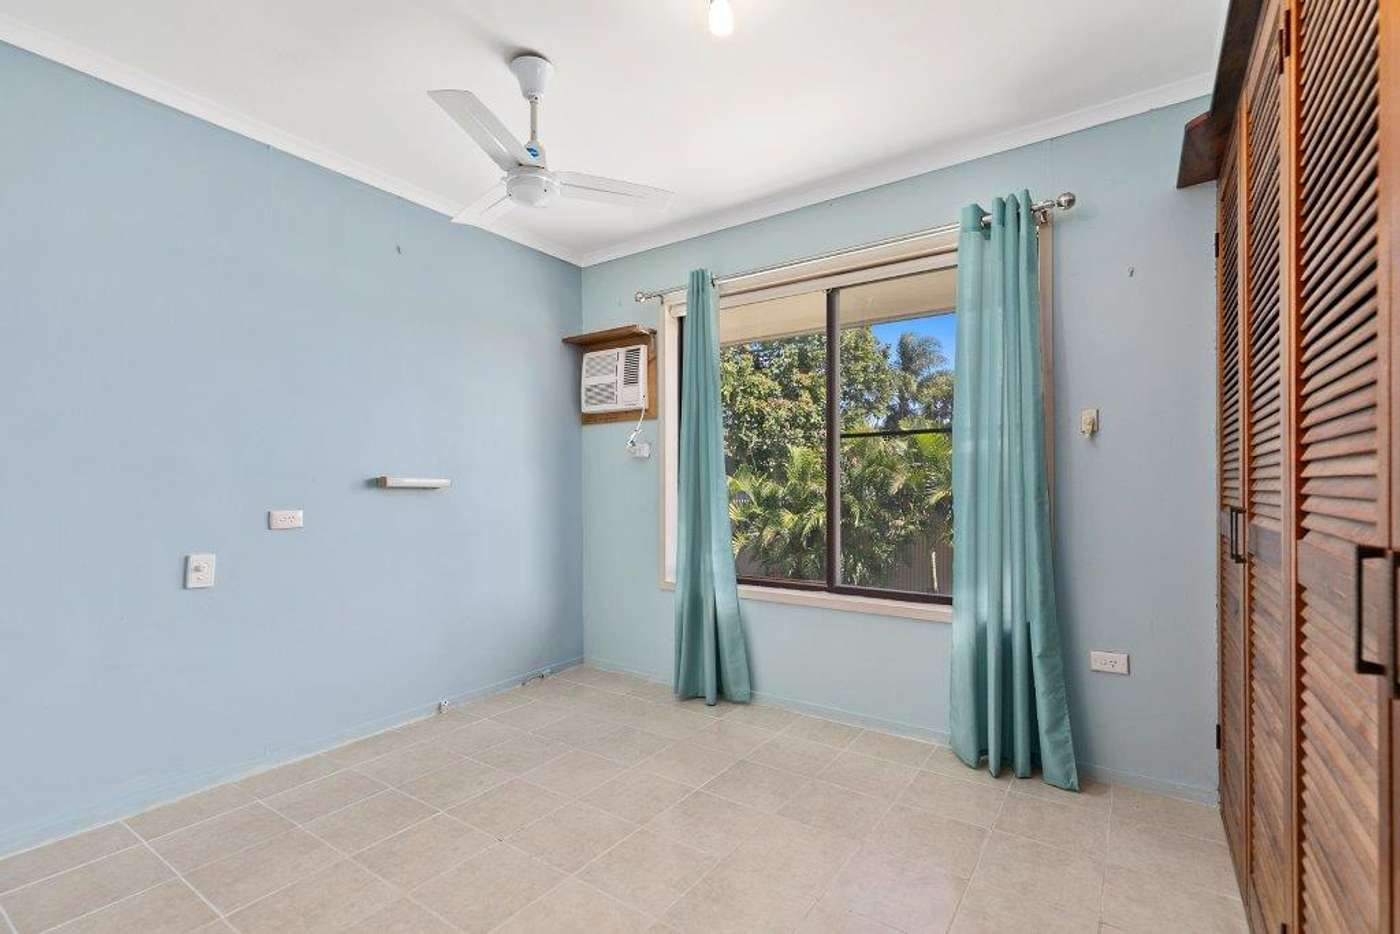 Seventh view of Homely house listing, 23 Holiday Parade, Scarness QLD 4655